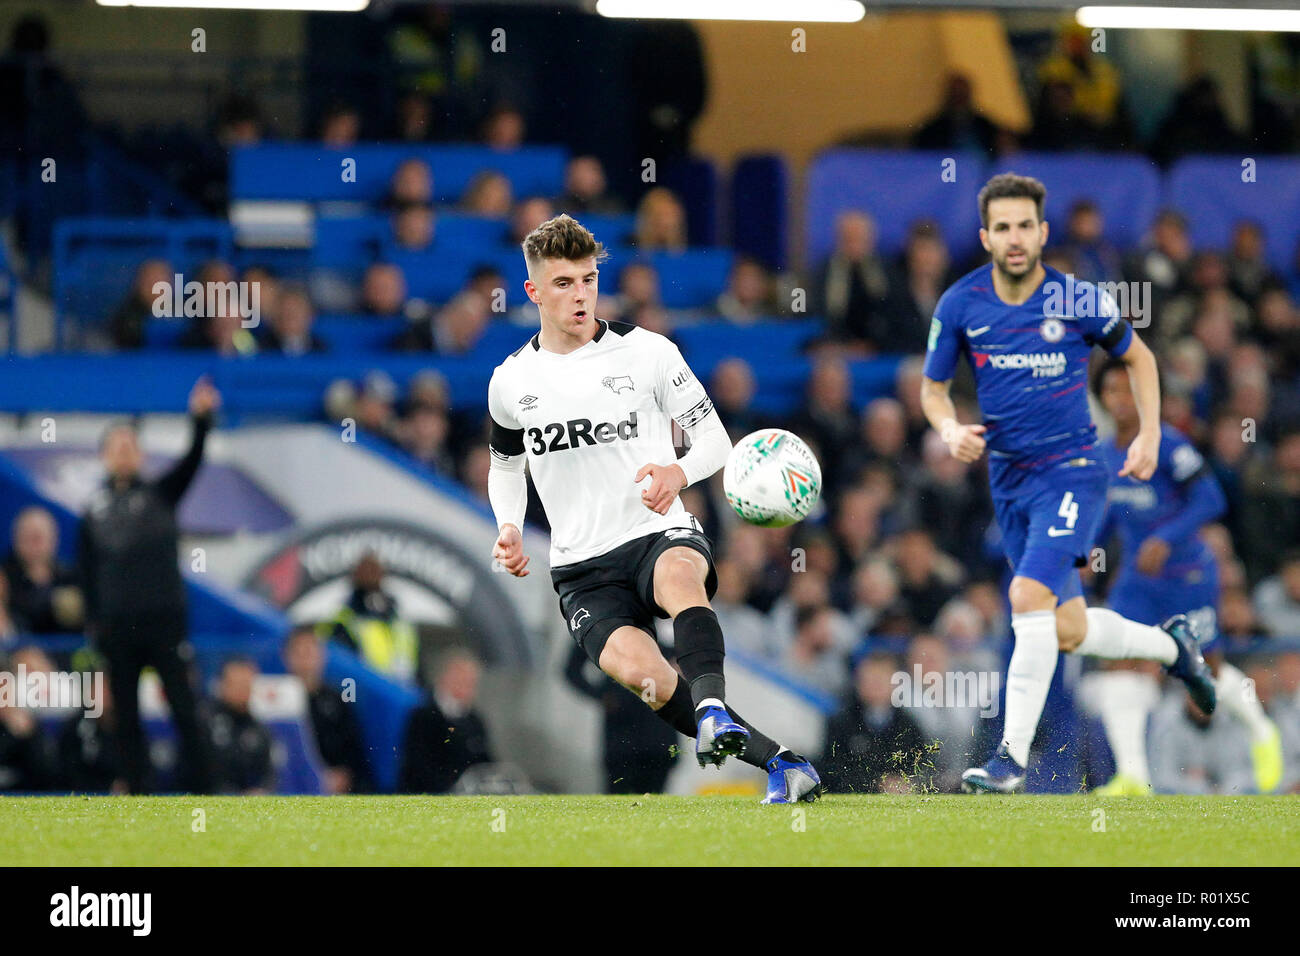 Mason Mount of Derby County spreads play during the EFL Carabao Cup Round of 16 match between Chelsea and Derby County at Stamford Bridge, London, England on 31 October 2018. Photo by Carlton Myrie.  Editorial use only, license required for commercial use. No use in betting, games or a single club/league/player publications. - Stock Image